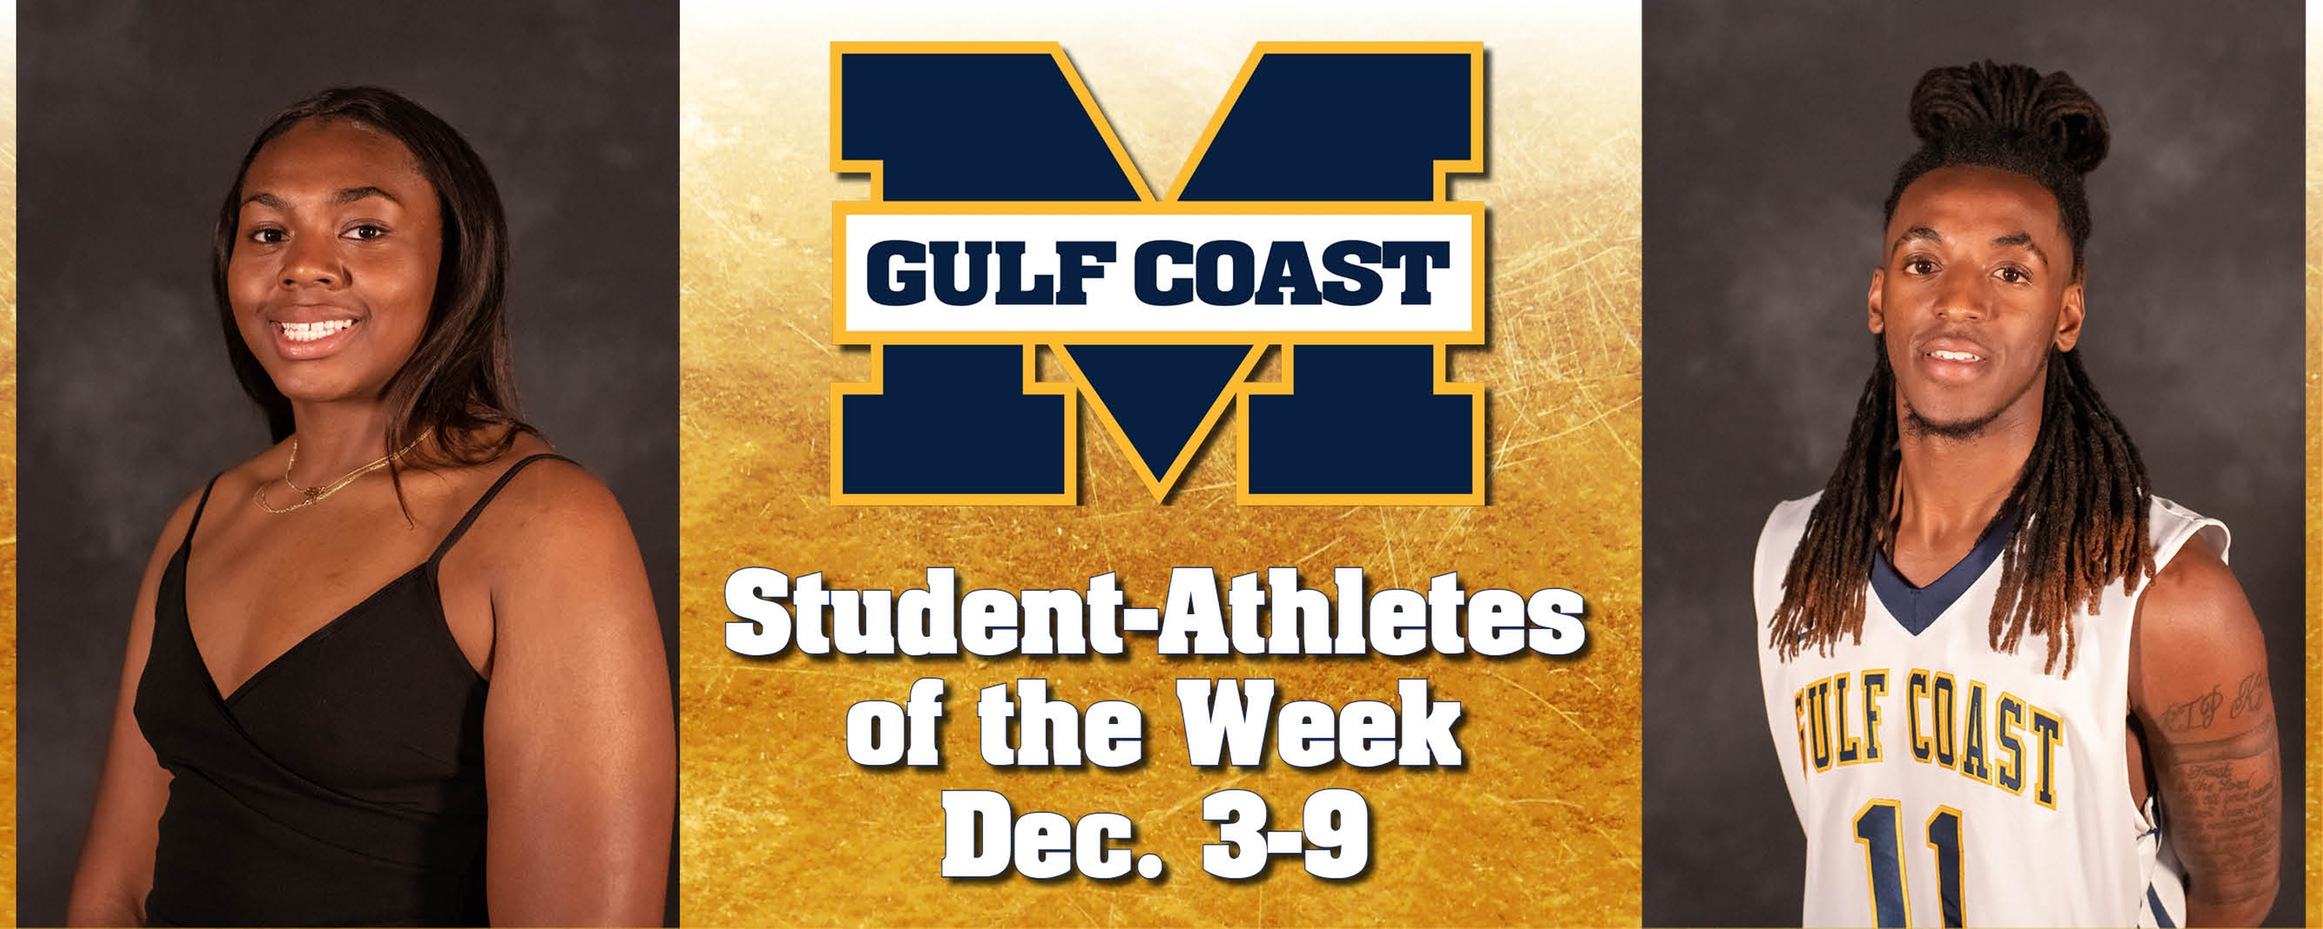 Simmons, Spivery named MGCCC Student-Athletes of the Week